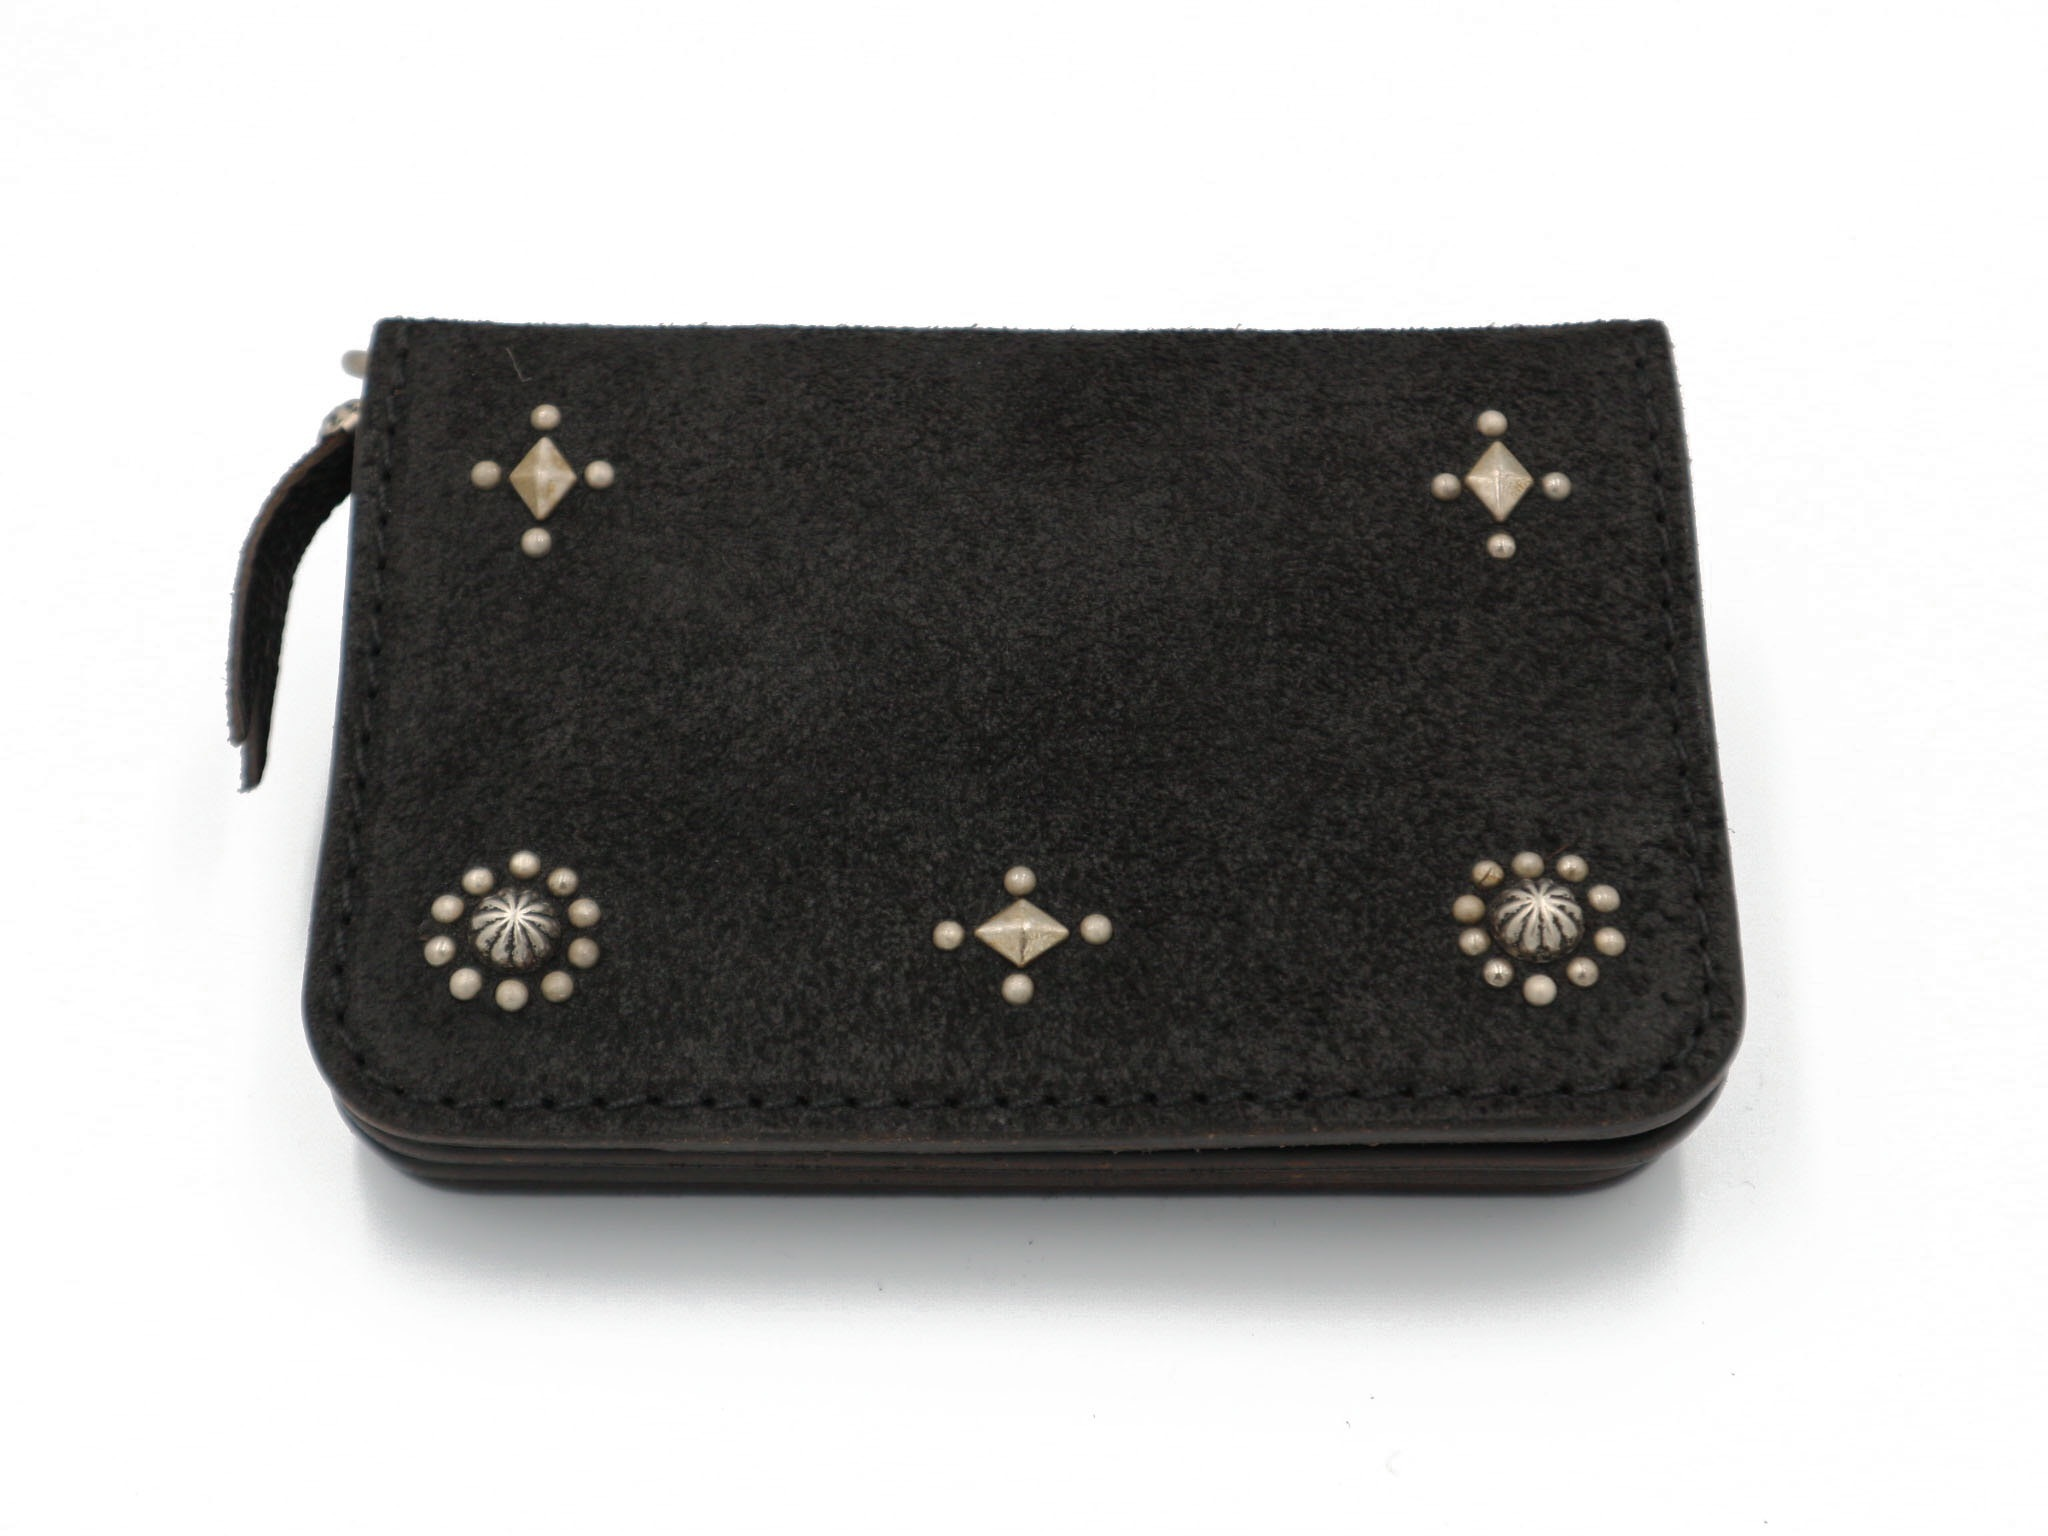 6inch STUDS WALLET (CROSS & SUN)